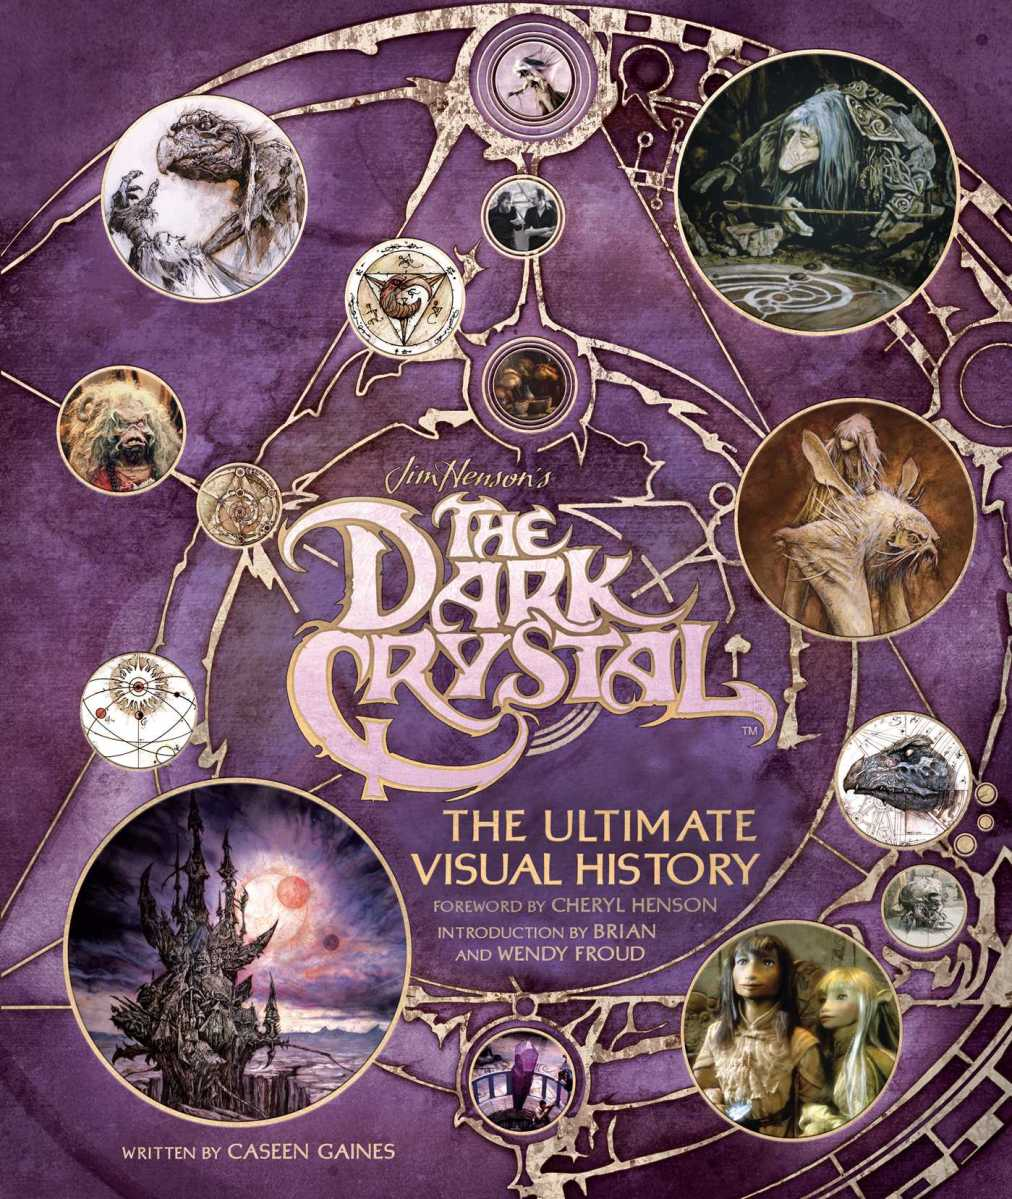 A Discussion With Caseen Gaines, Author of 'The Dark Crystal: The Ultimate Visual History'